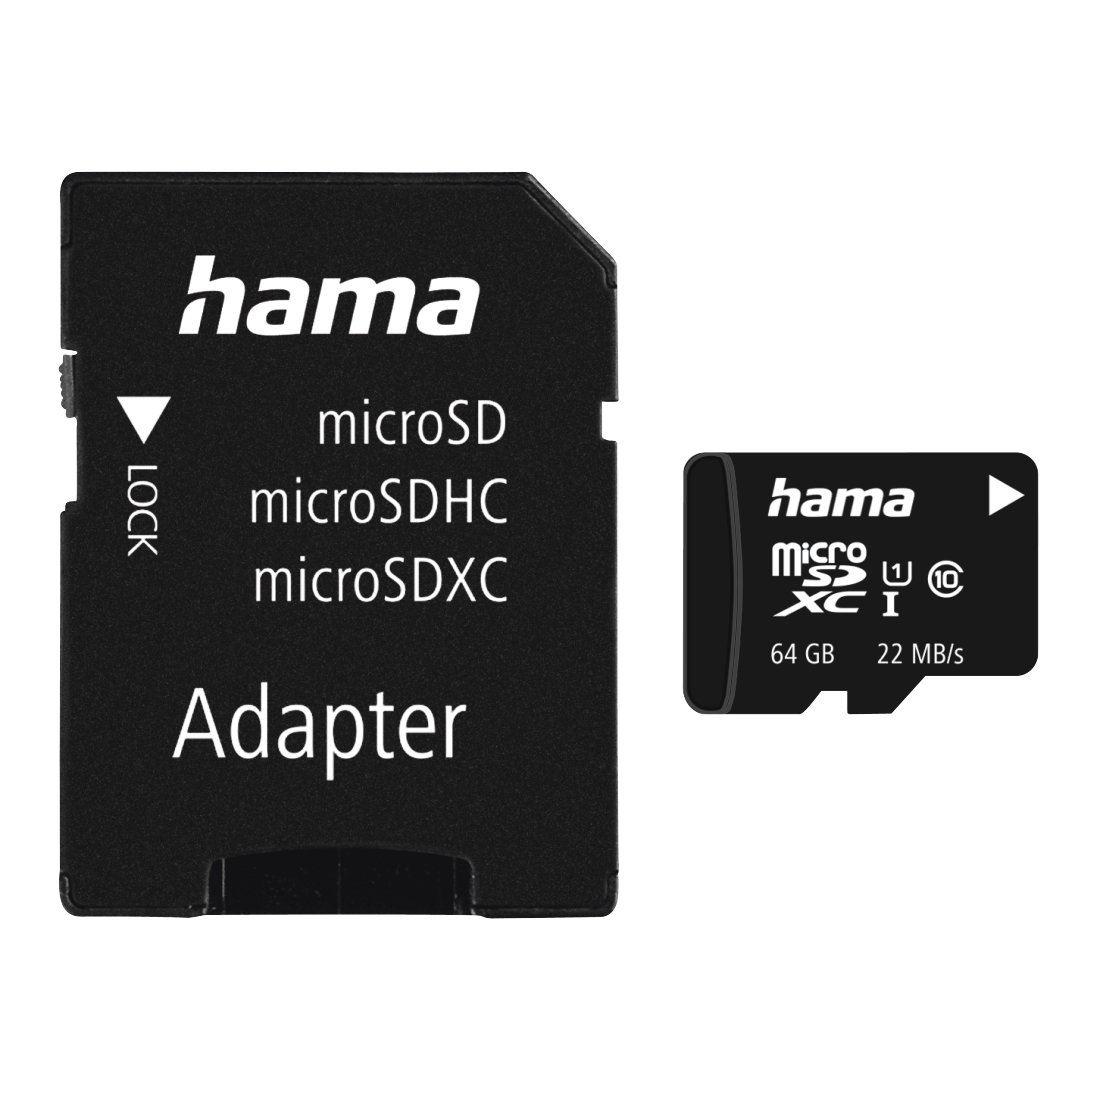 abx Druckfähige Abbildung - Hama, microSDXC 64GB Class 10 UHS-I 22MB/s + Adapter/Mobile